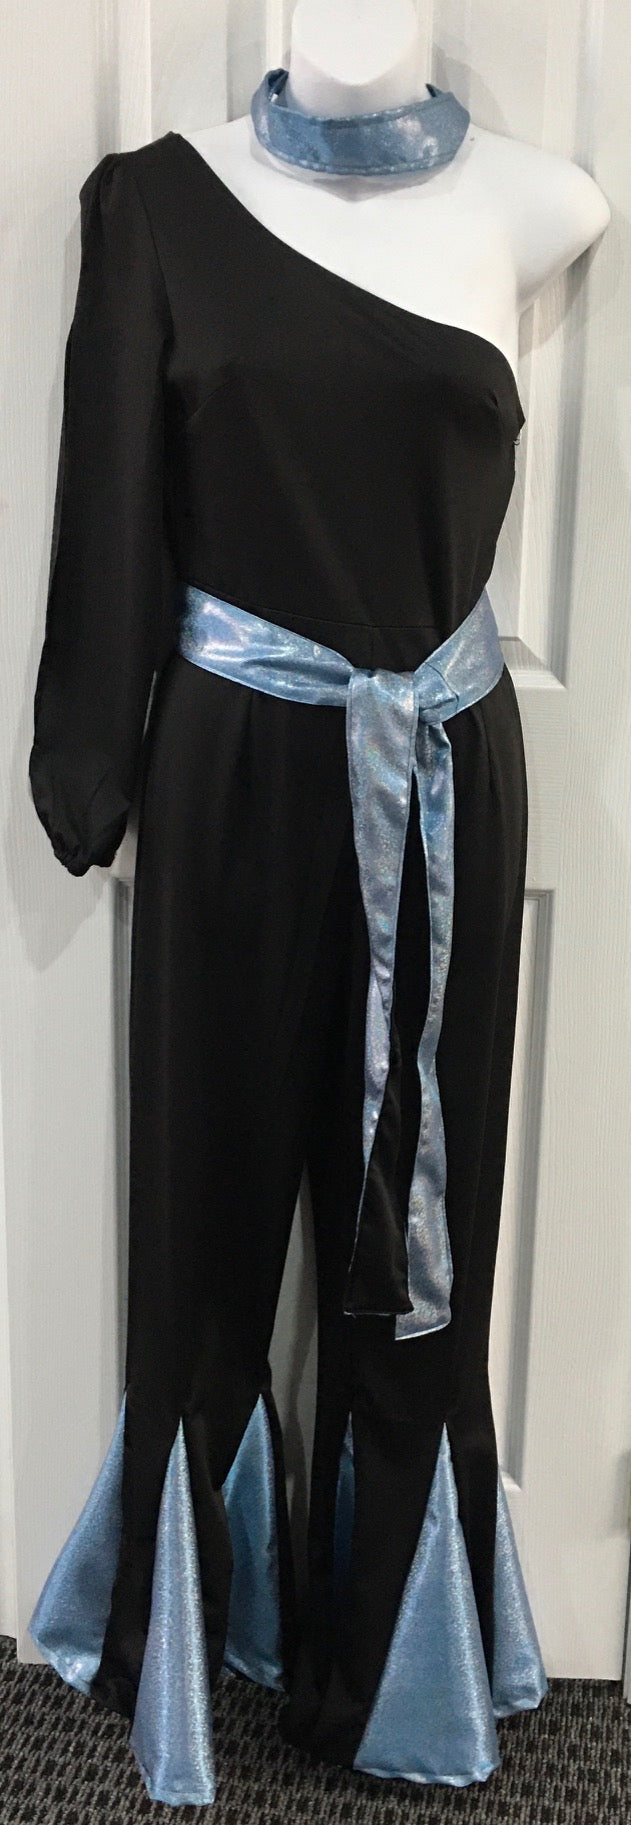 COSTUME RENTAL - X306 Jumpsuit, Black disco with blue trim